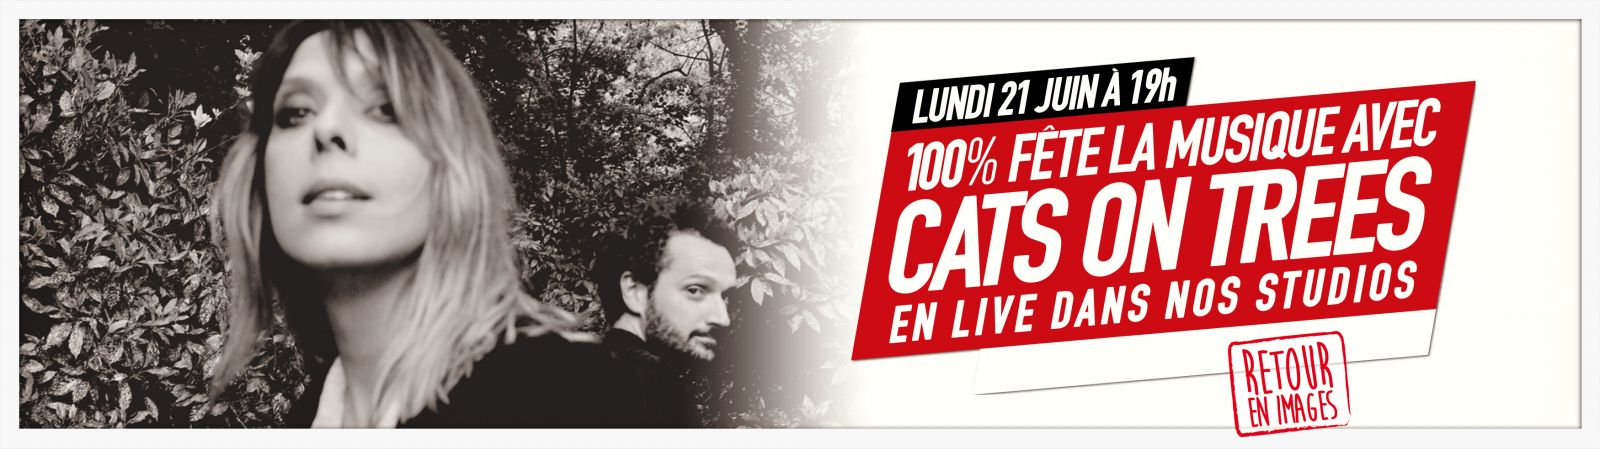 CATS ON TREES sur 100%